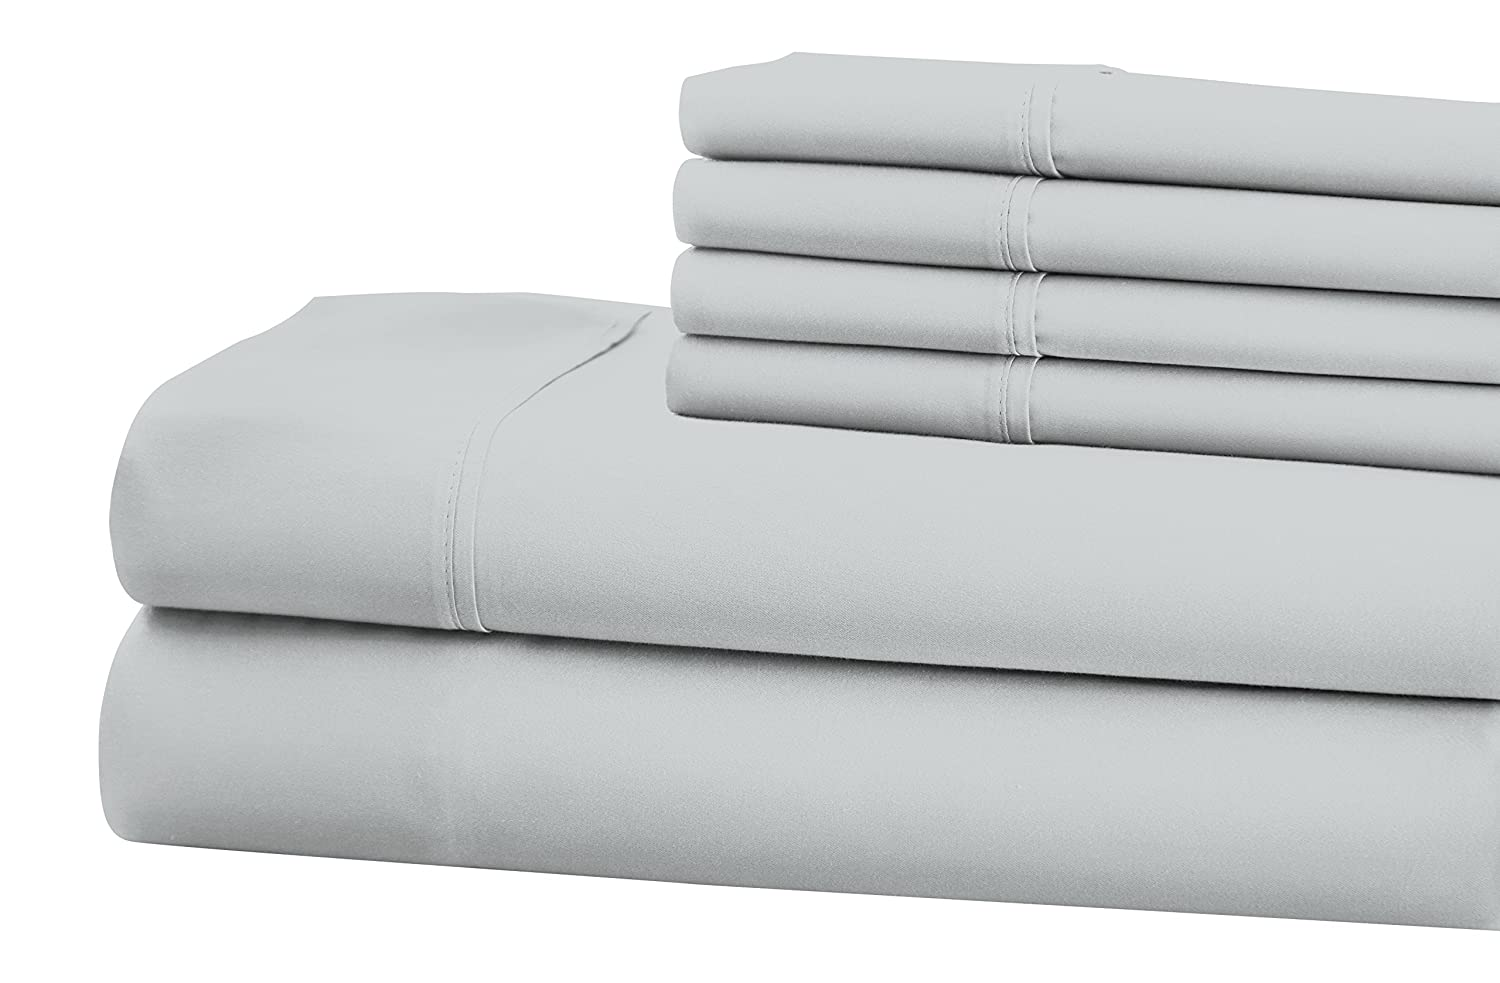 SOP-8564 Opulence 800 TC 6 Pc S.L Home Fashions Full Sheet Set Gray Inc